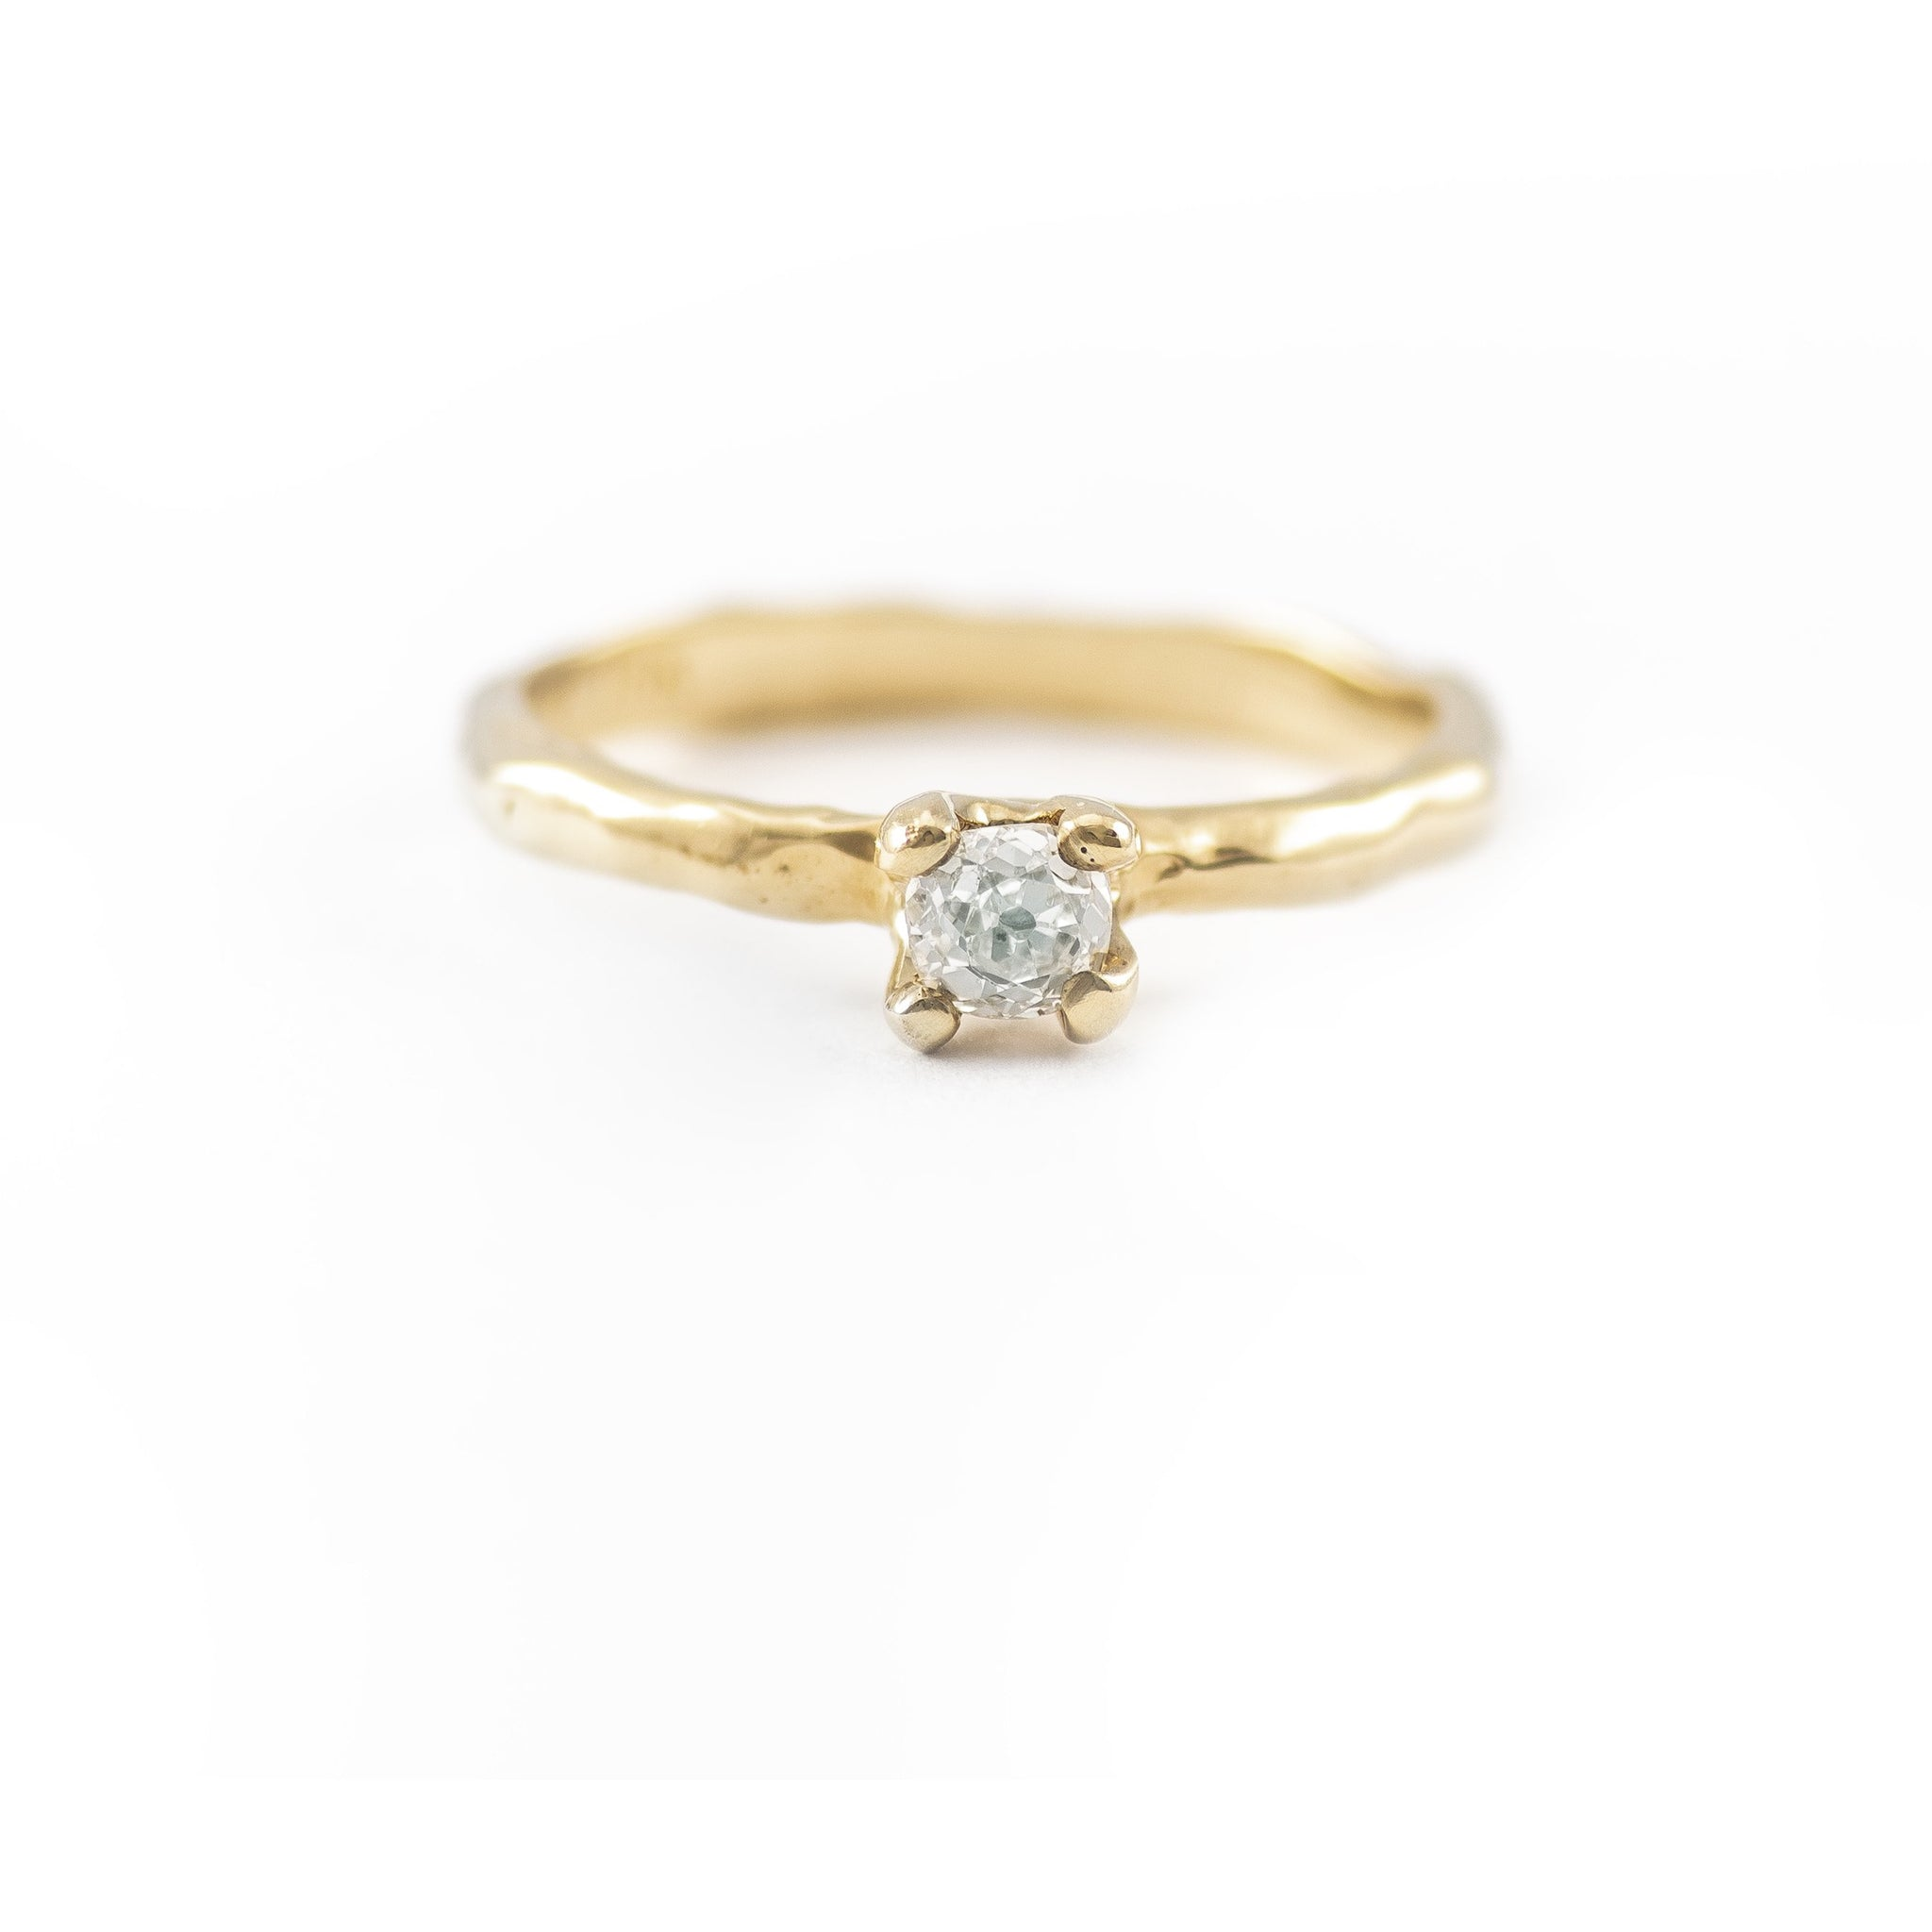 One of a Kind Gold Prong Melt Ring - Johanna Brierley Jewellery Design